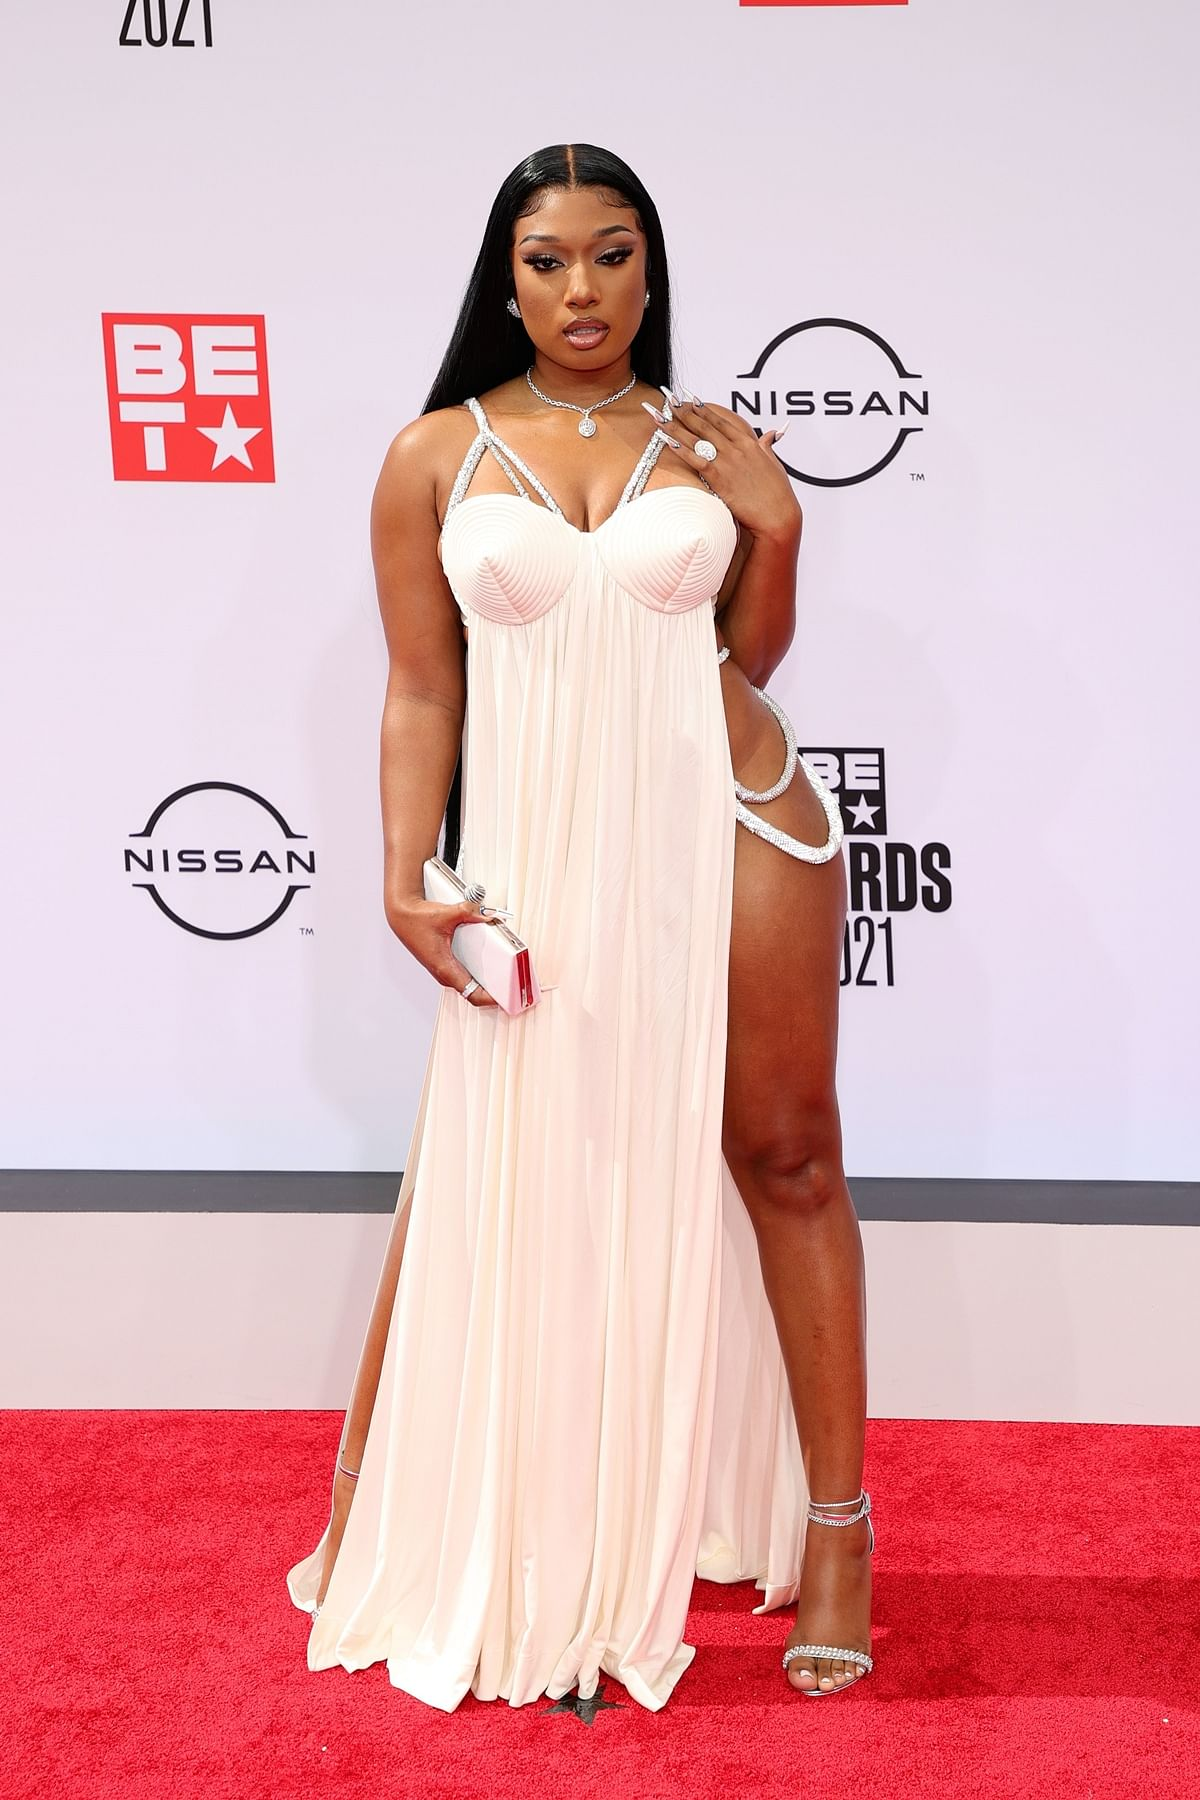 BET Awards 2021: Rapper Megan Thee Stallion leaves little to the imagination with her risqué outfit